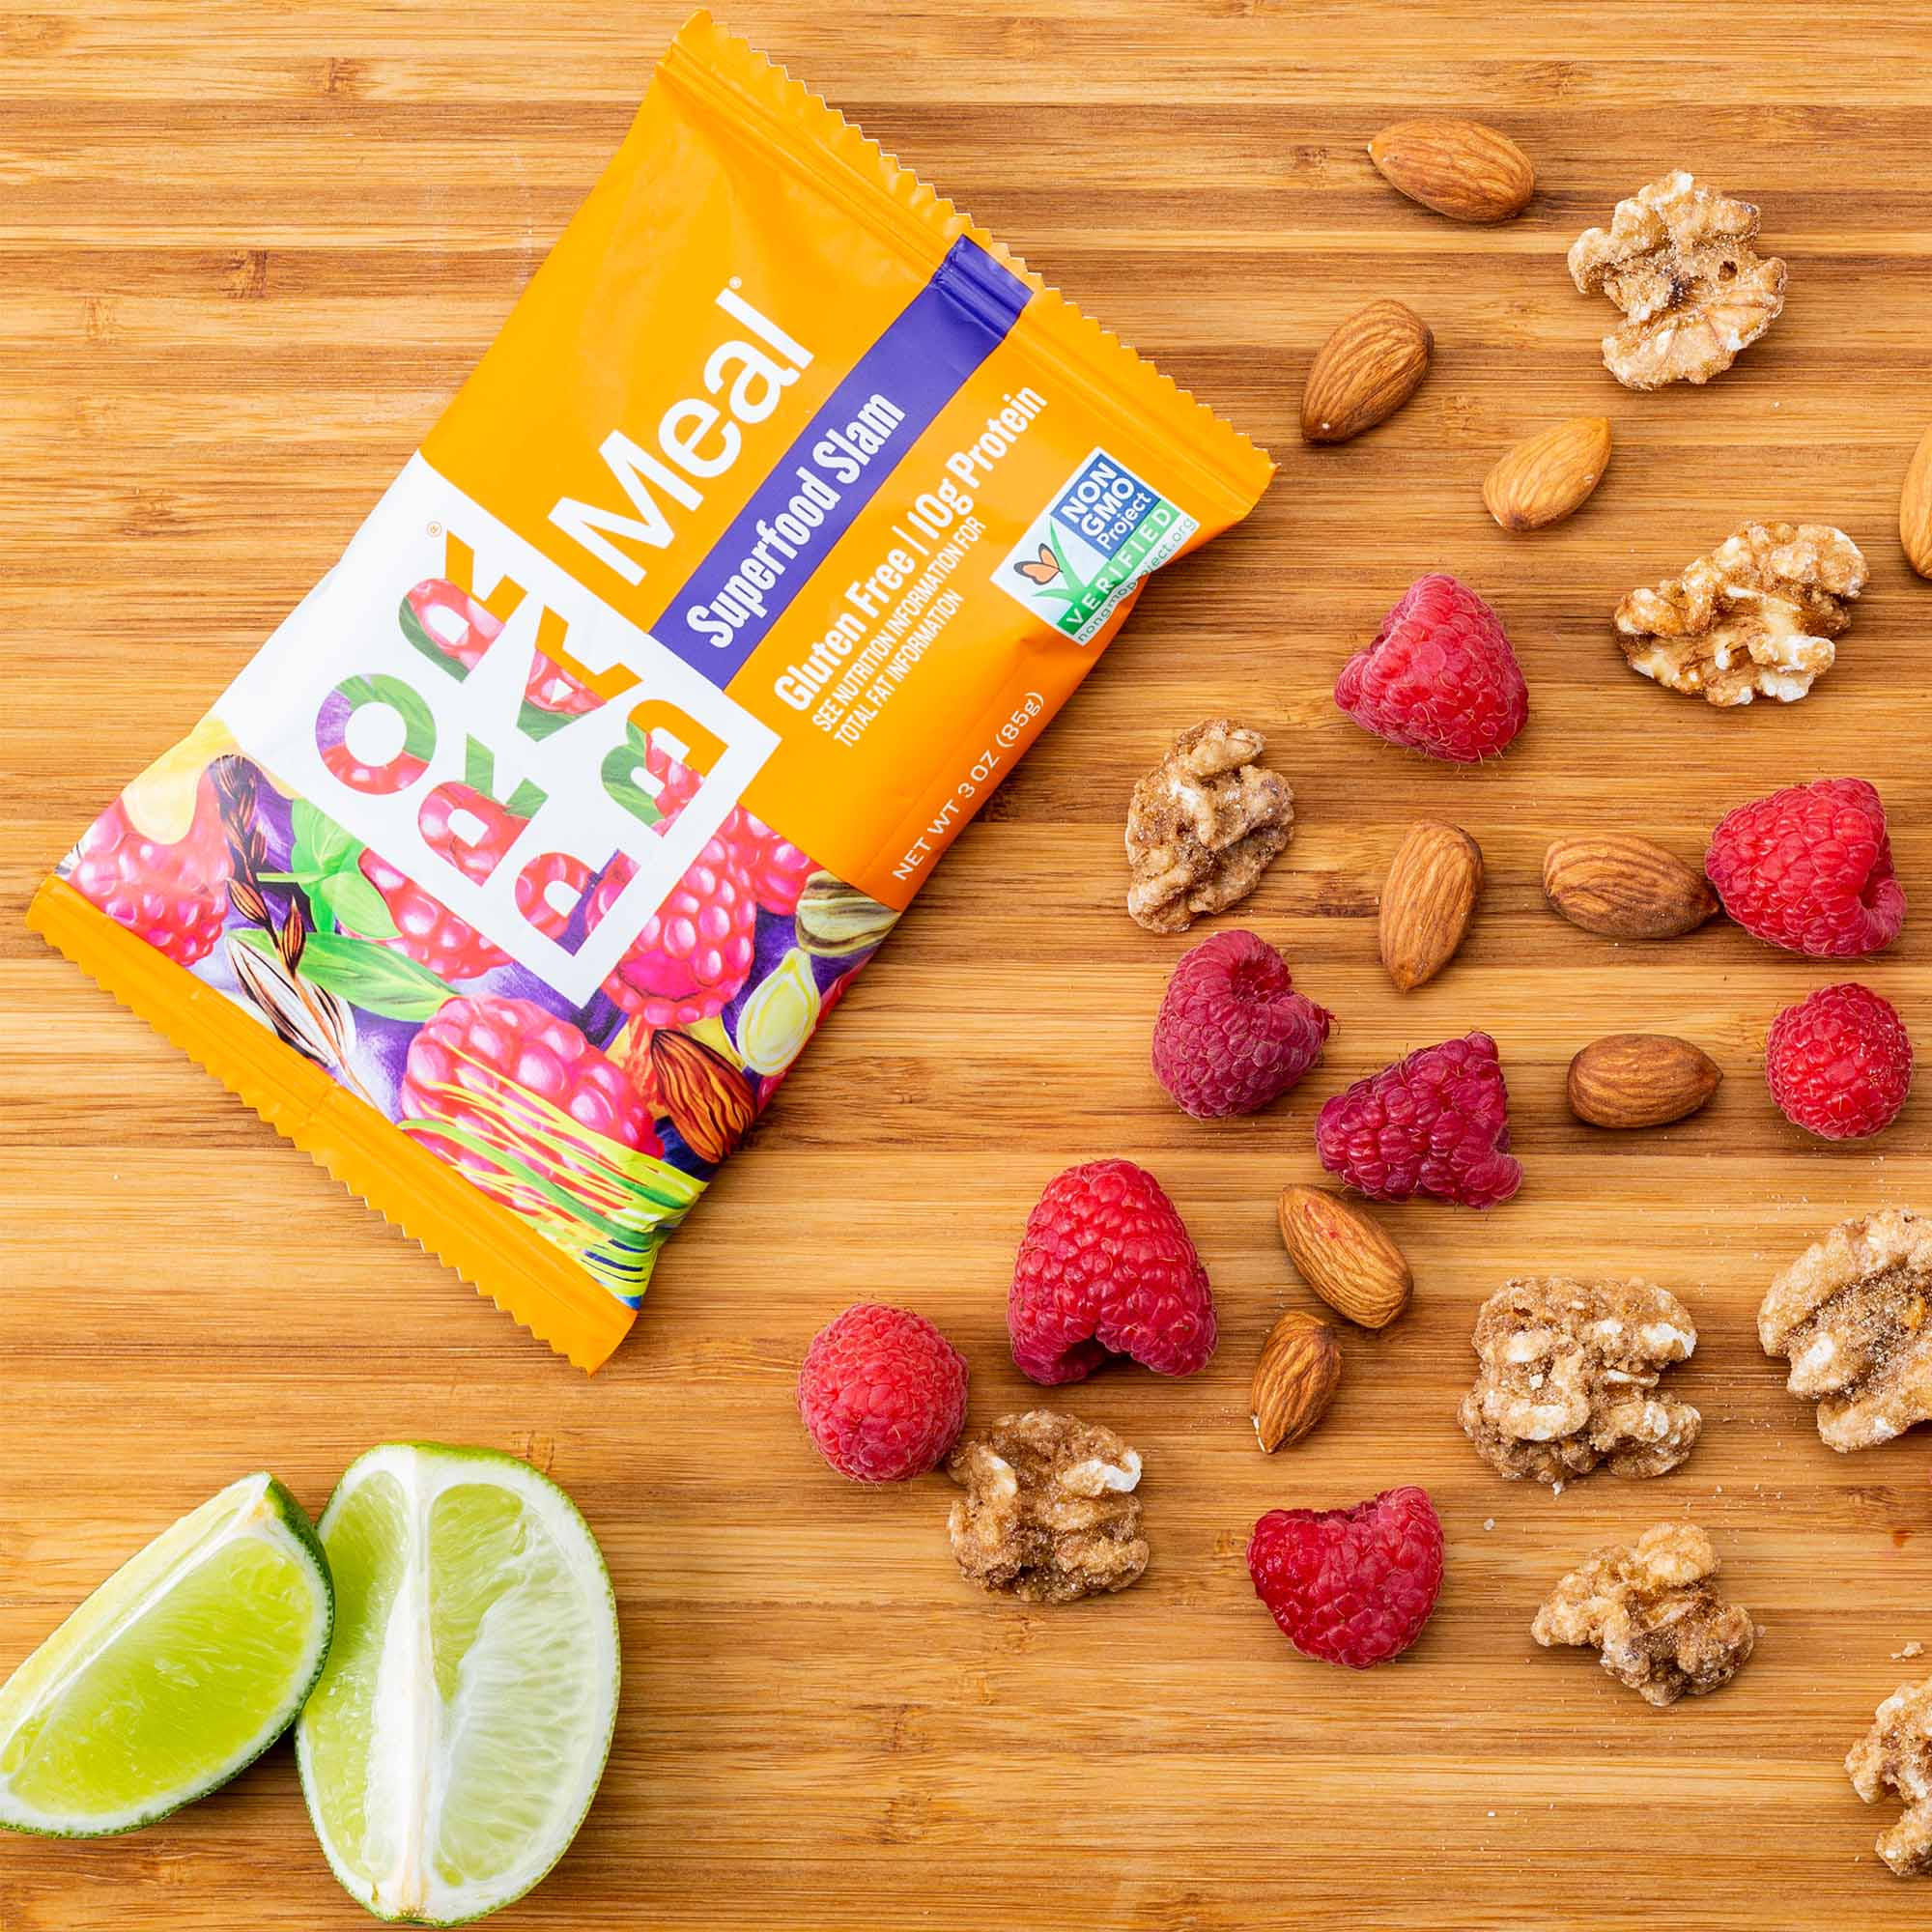 Creative In Studio Product Photography with Nutrition Bar